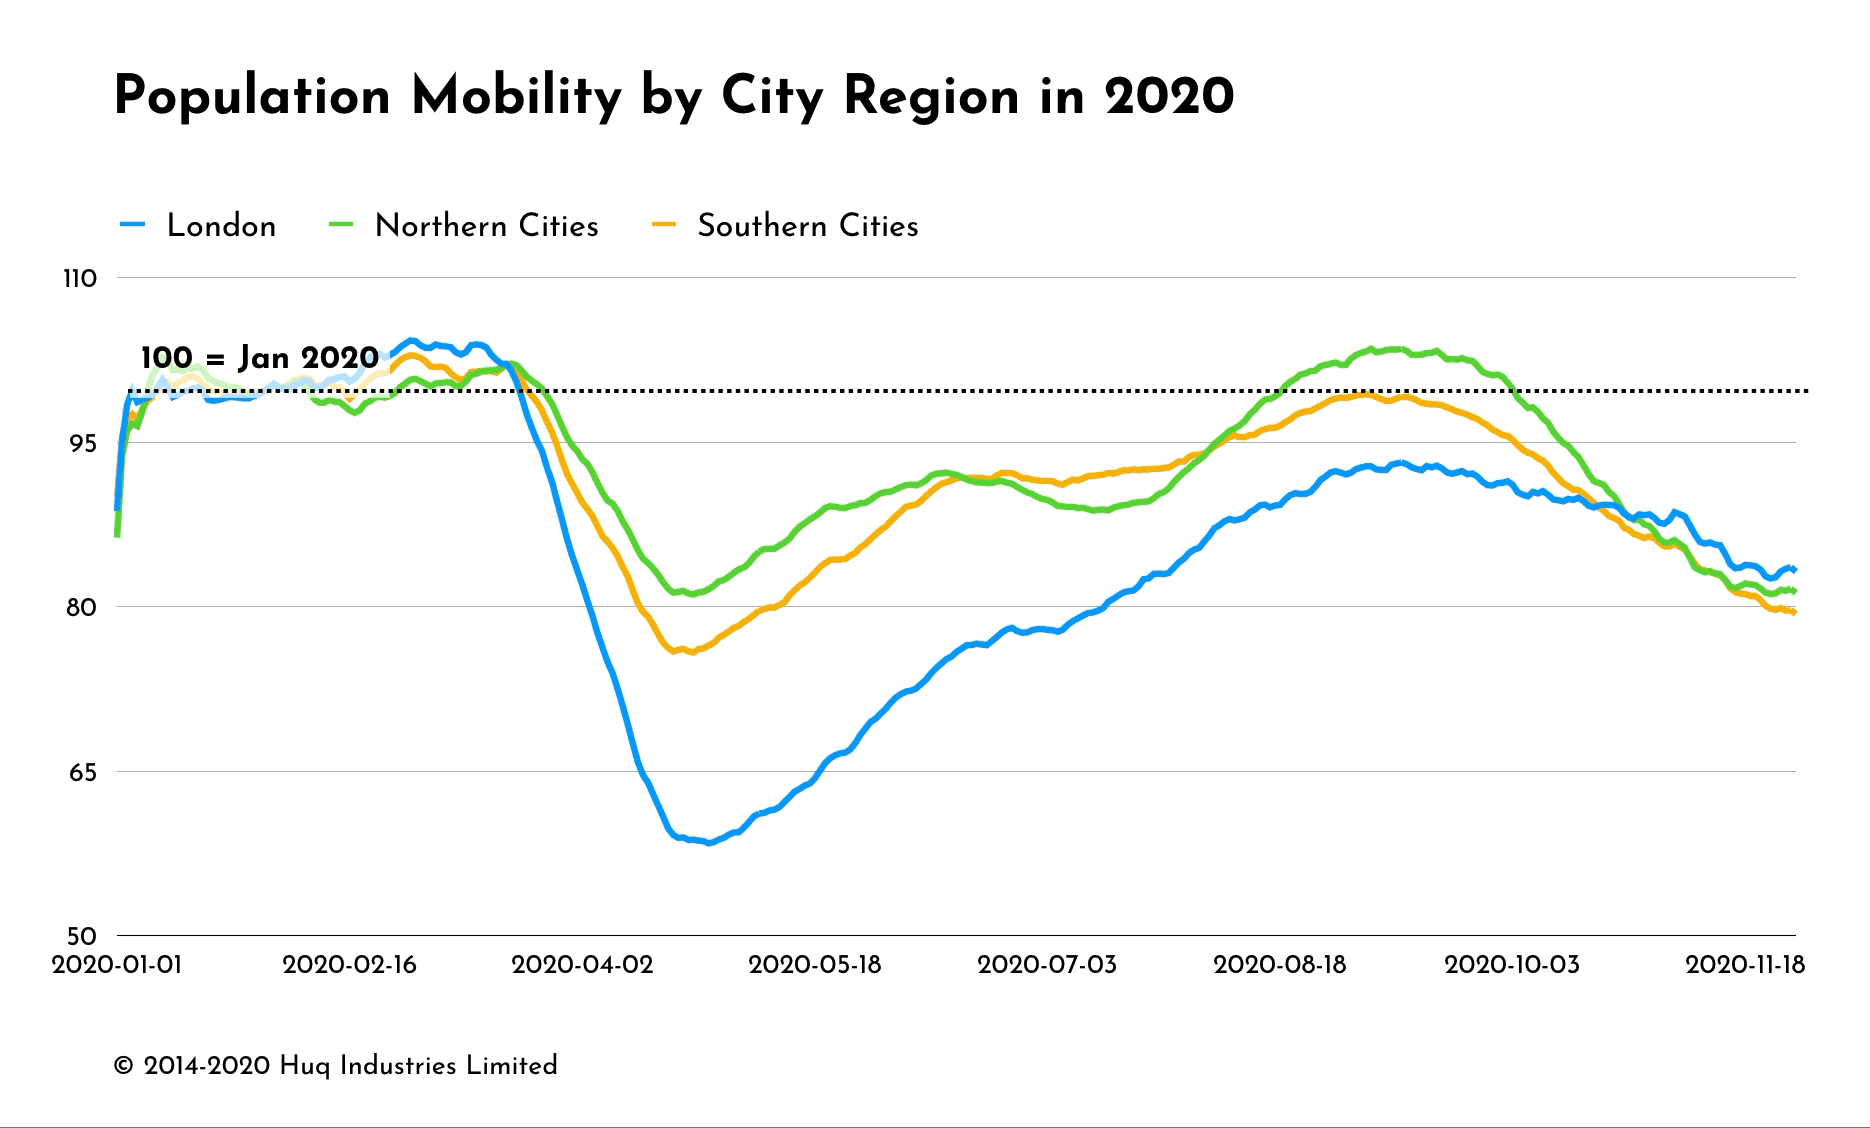 Mobility rates for the north versus south England